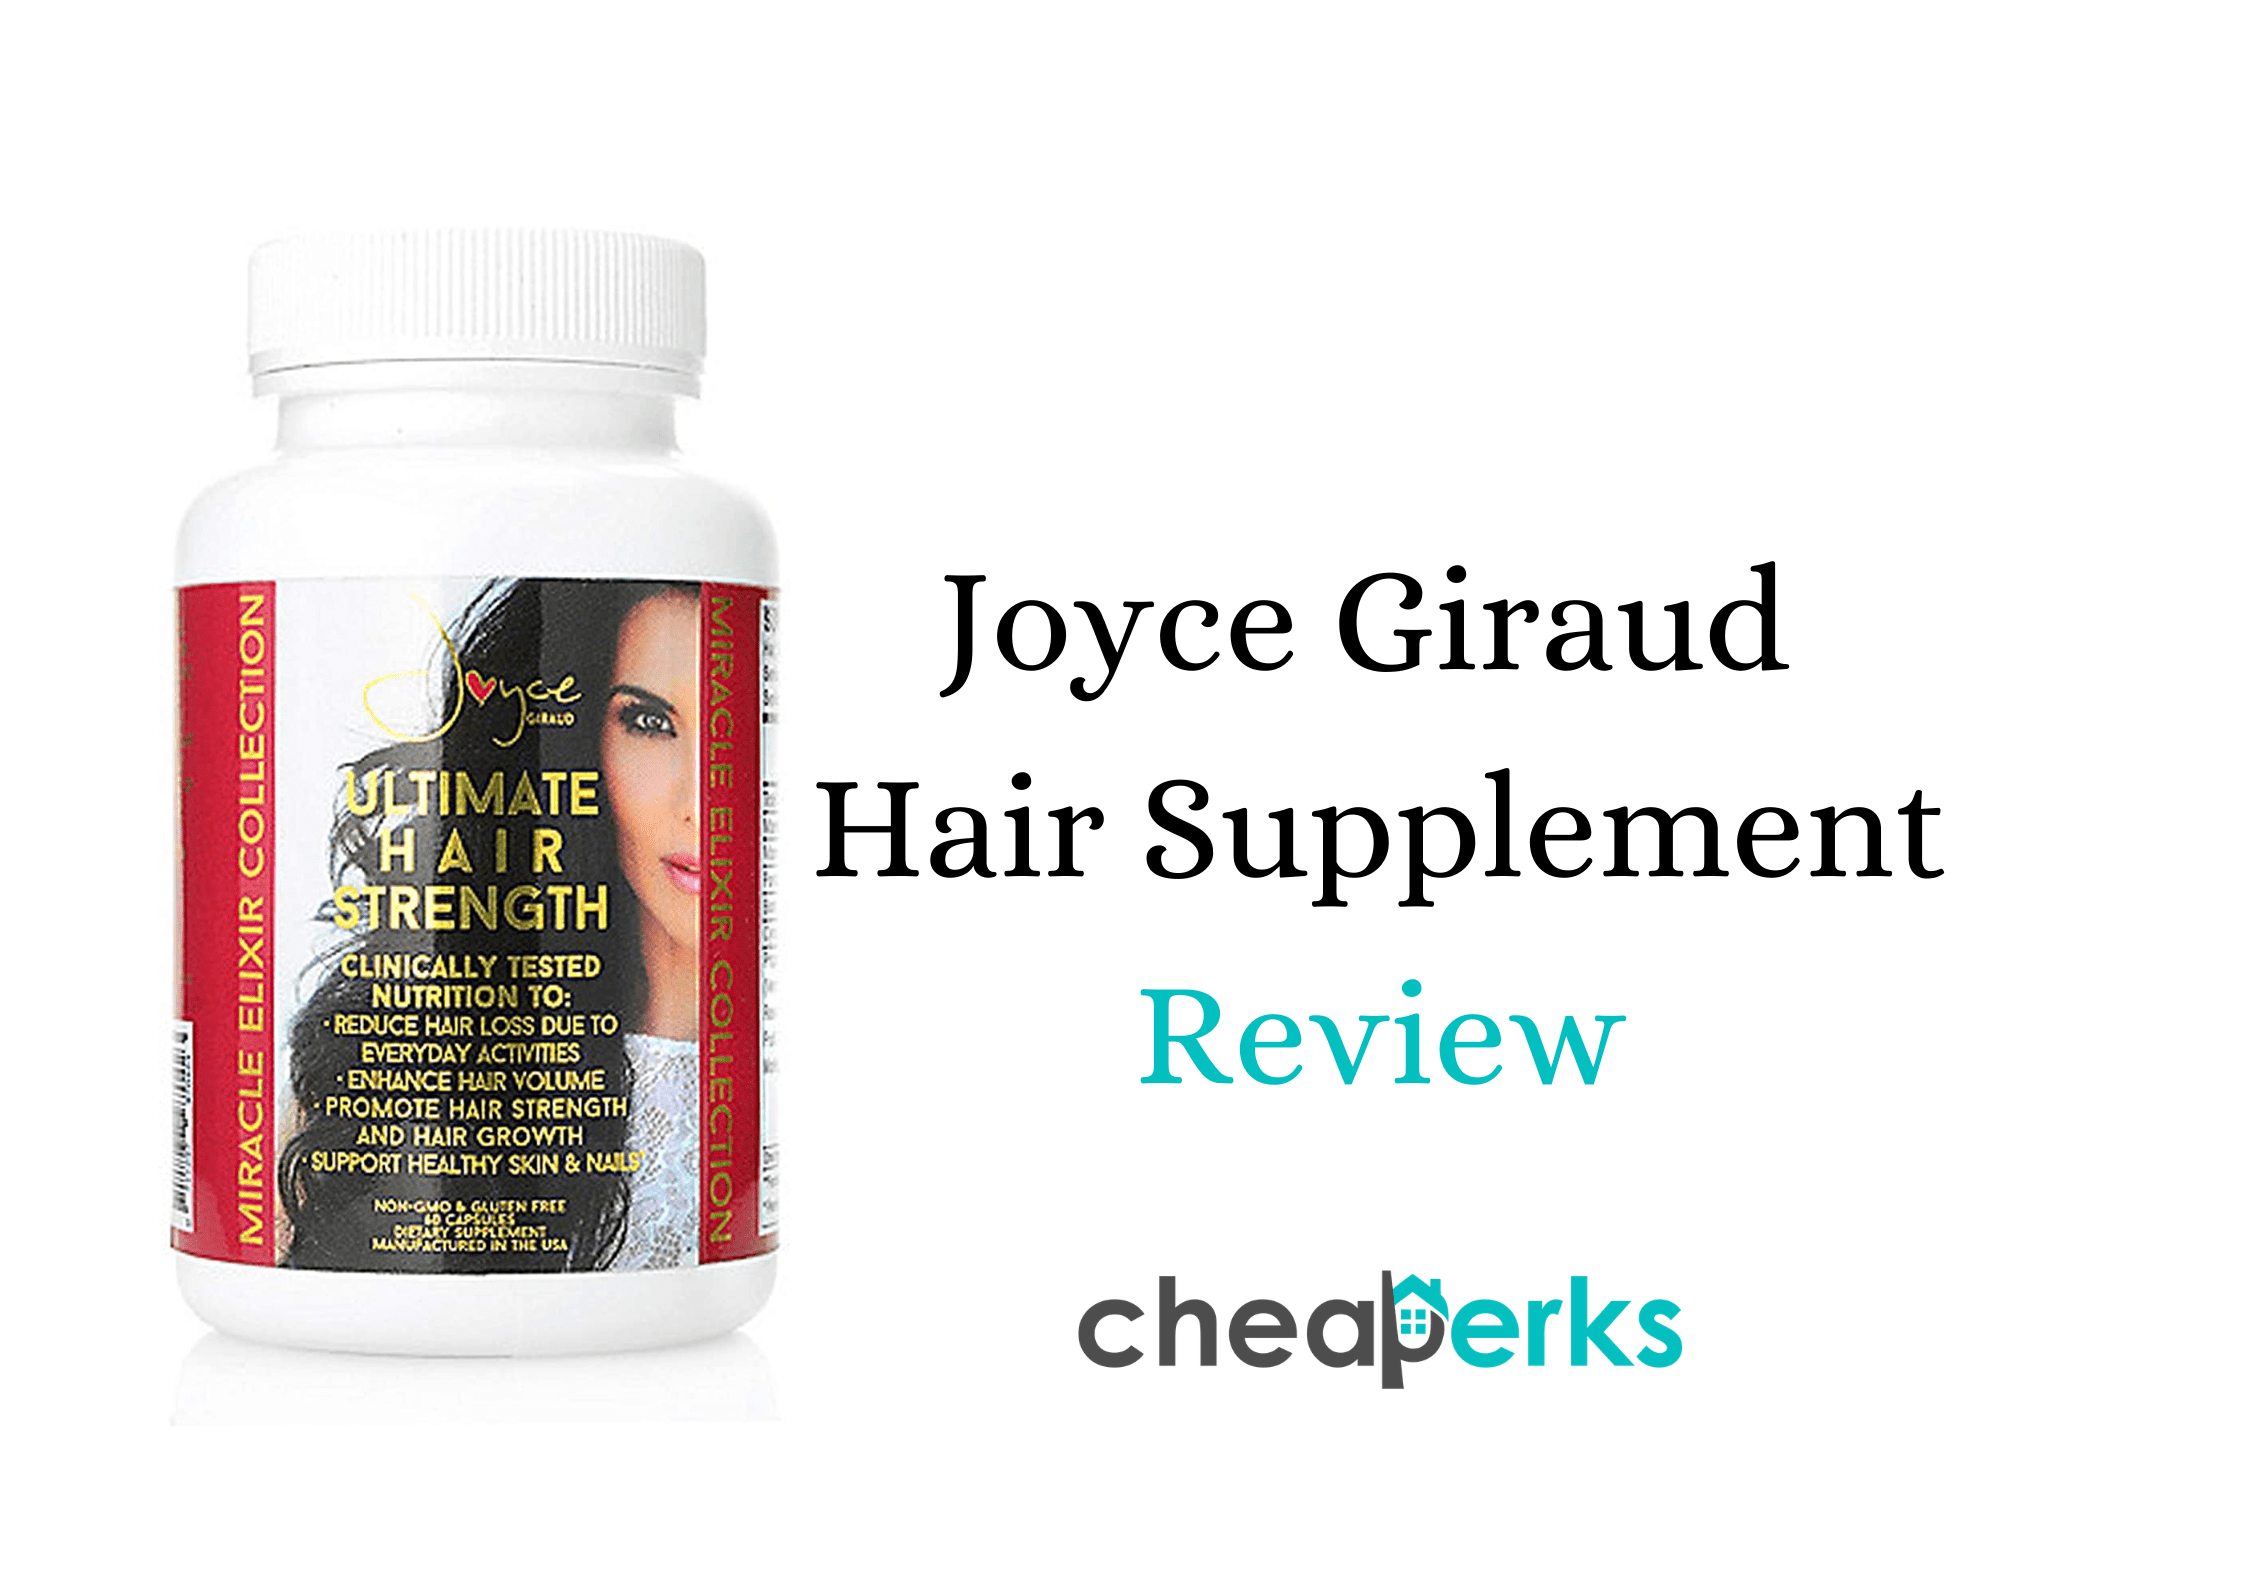 Joyce Giraud Hair Supplements Reviews